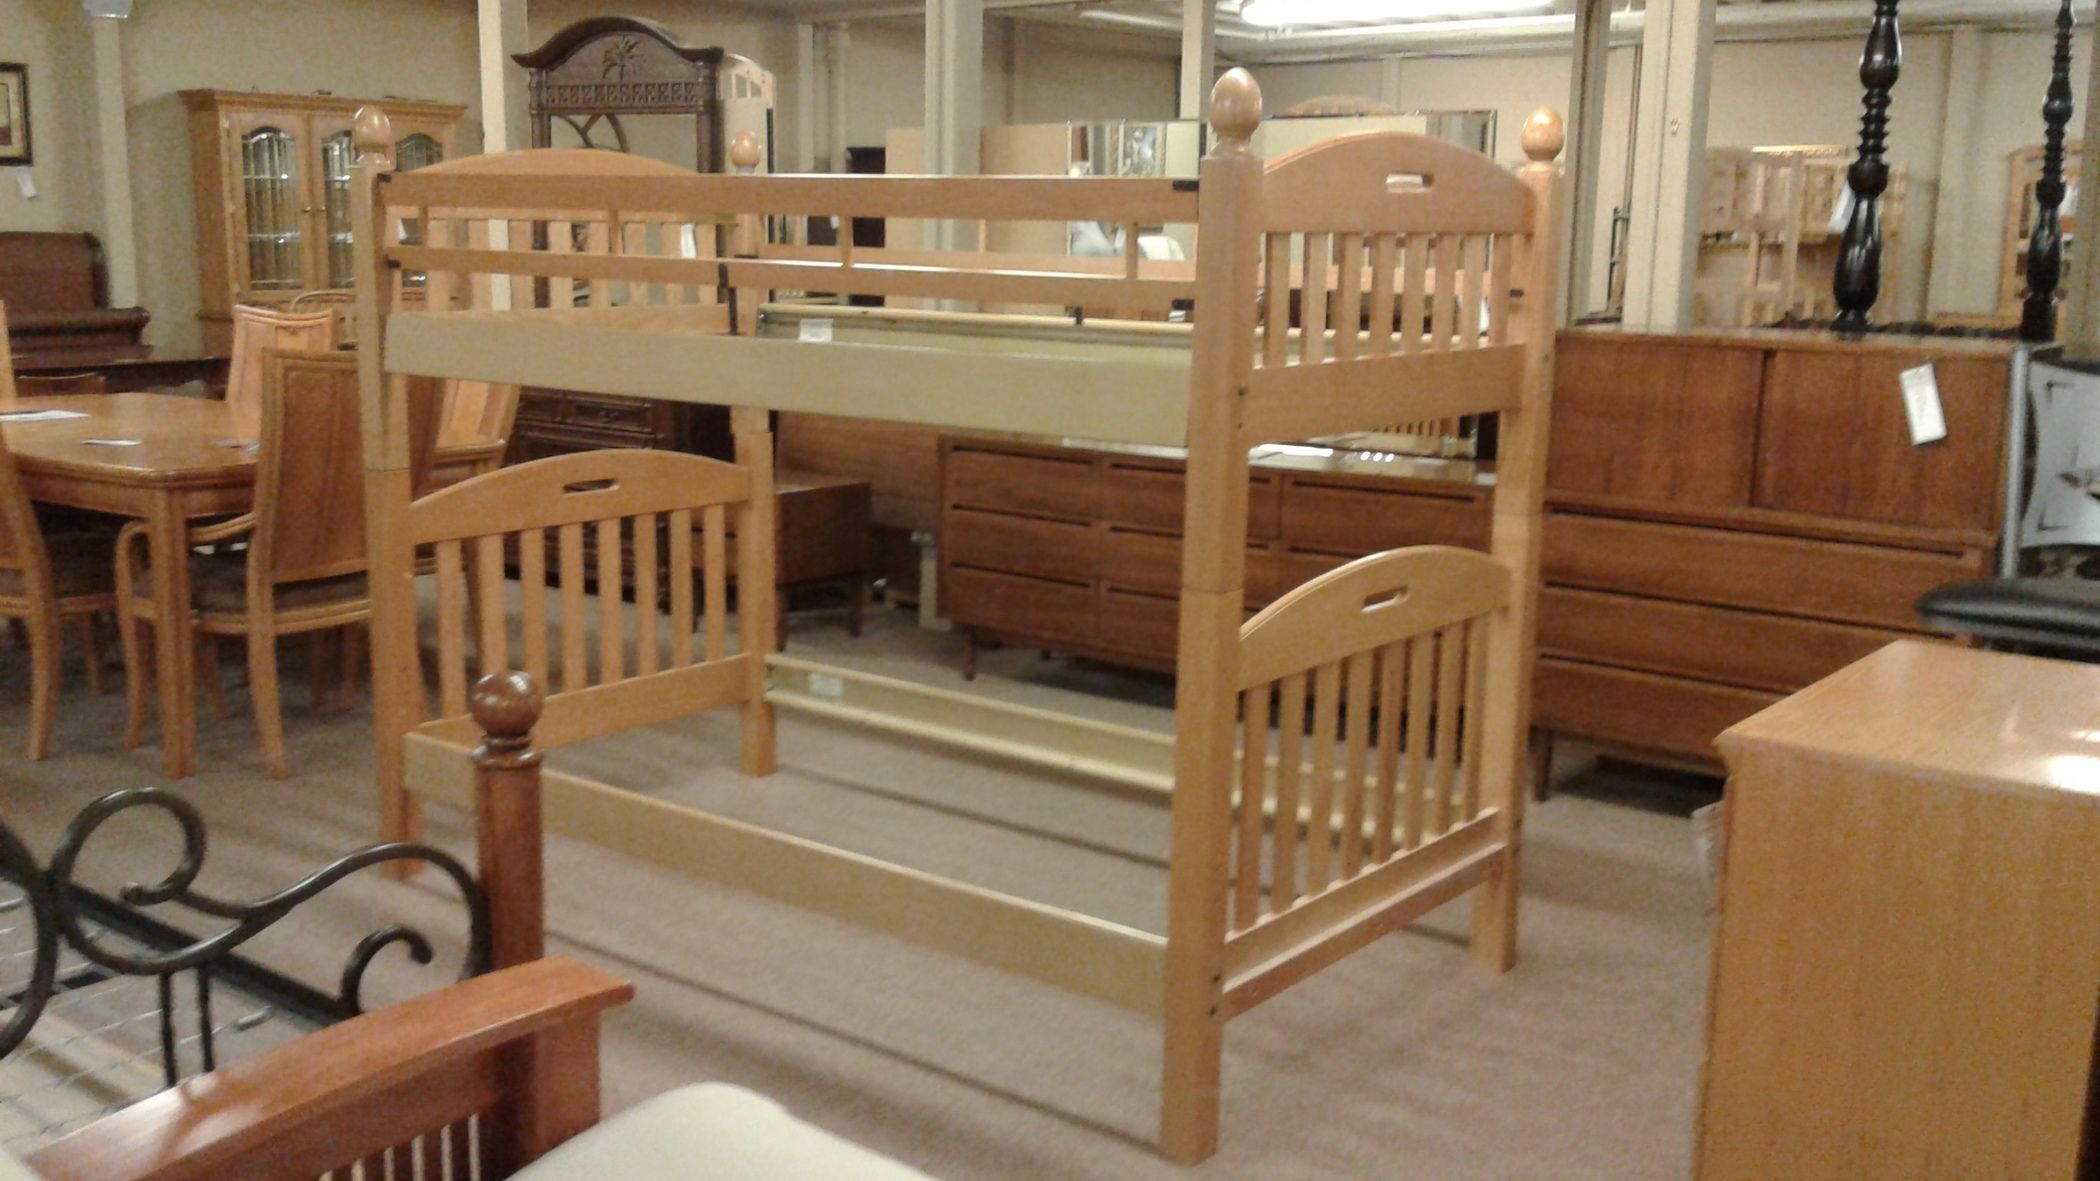 Bassett Bunk Beds Delmarva Furniture Consignment